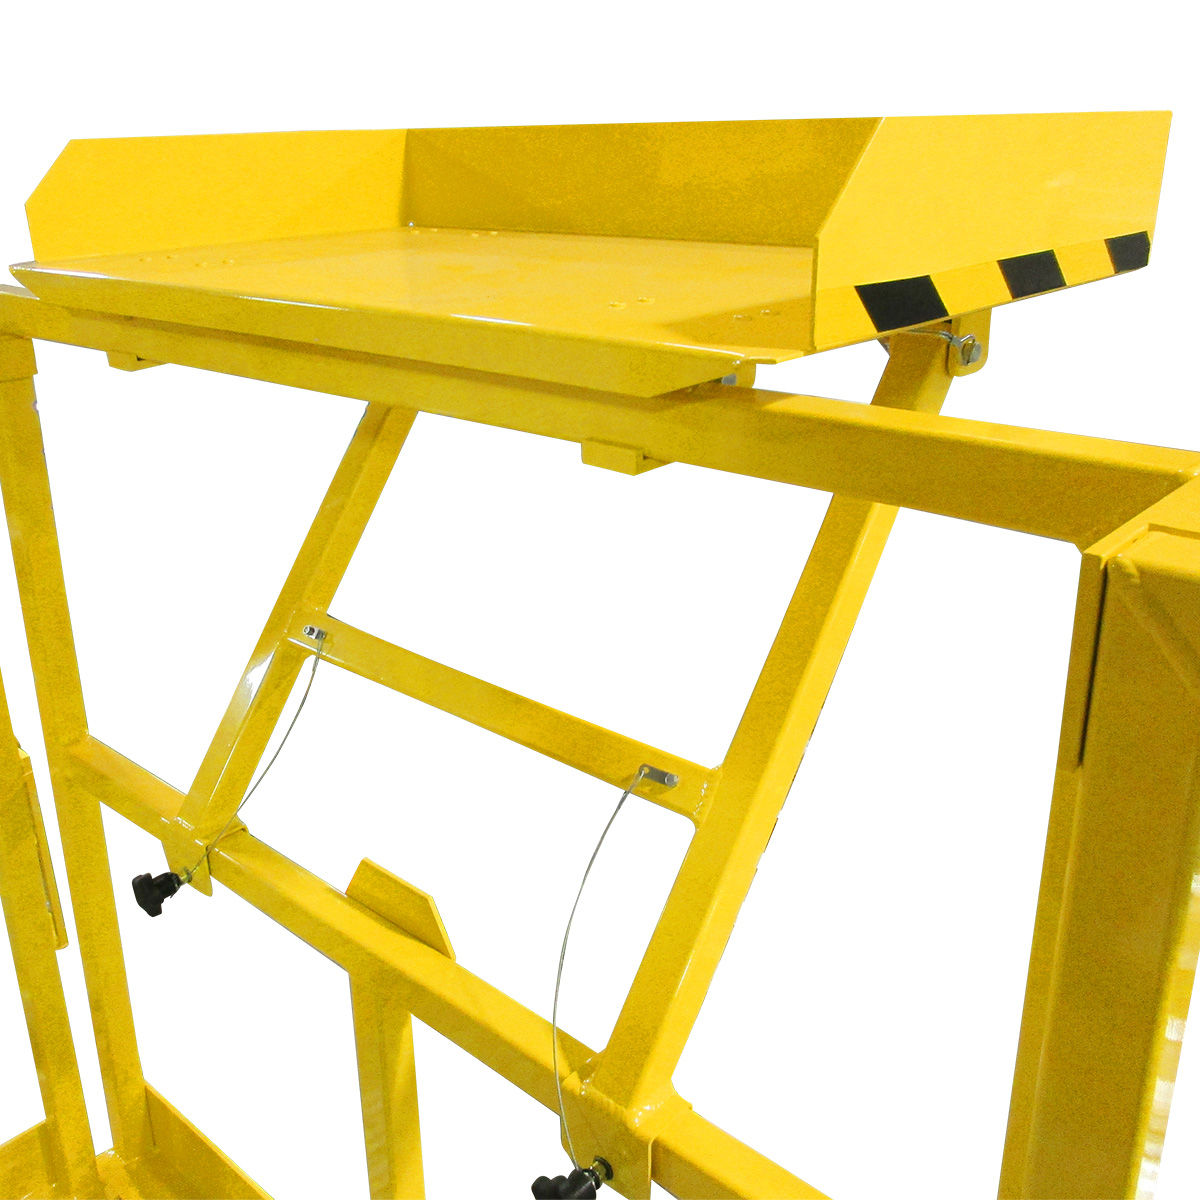 Laptop and tool trays for OSHA compliant mobile aluminum work platforms available in rust-resistant full powder coat.